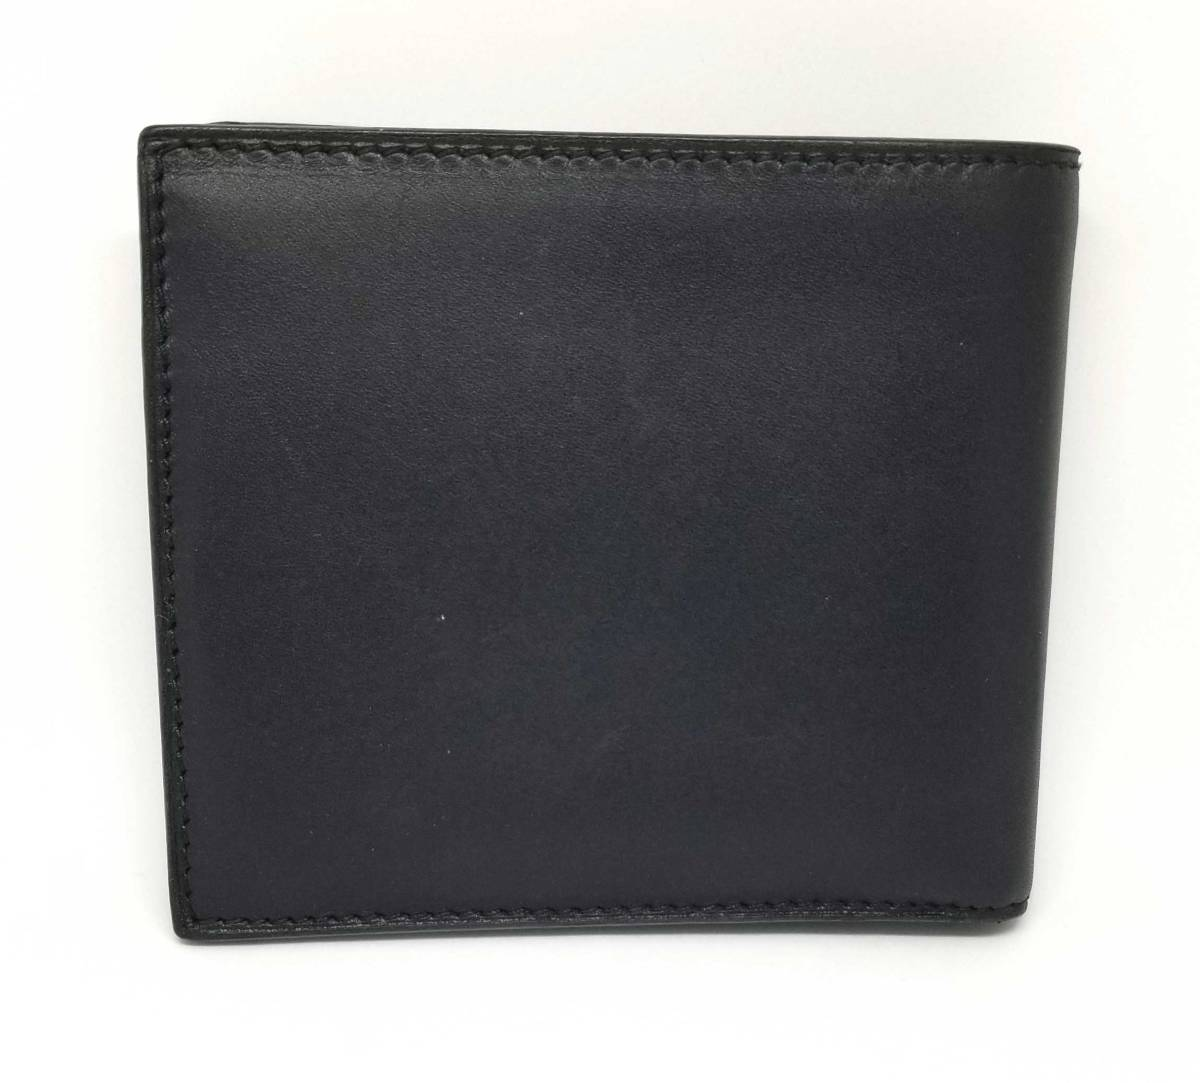 7f0ba3c4dd86 ... The genuine leather GUCCI compact which there is a Gucci folio wallet  men black black leather ...